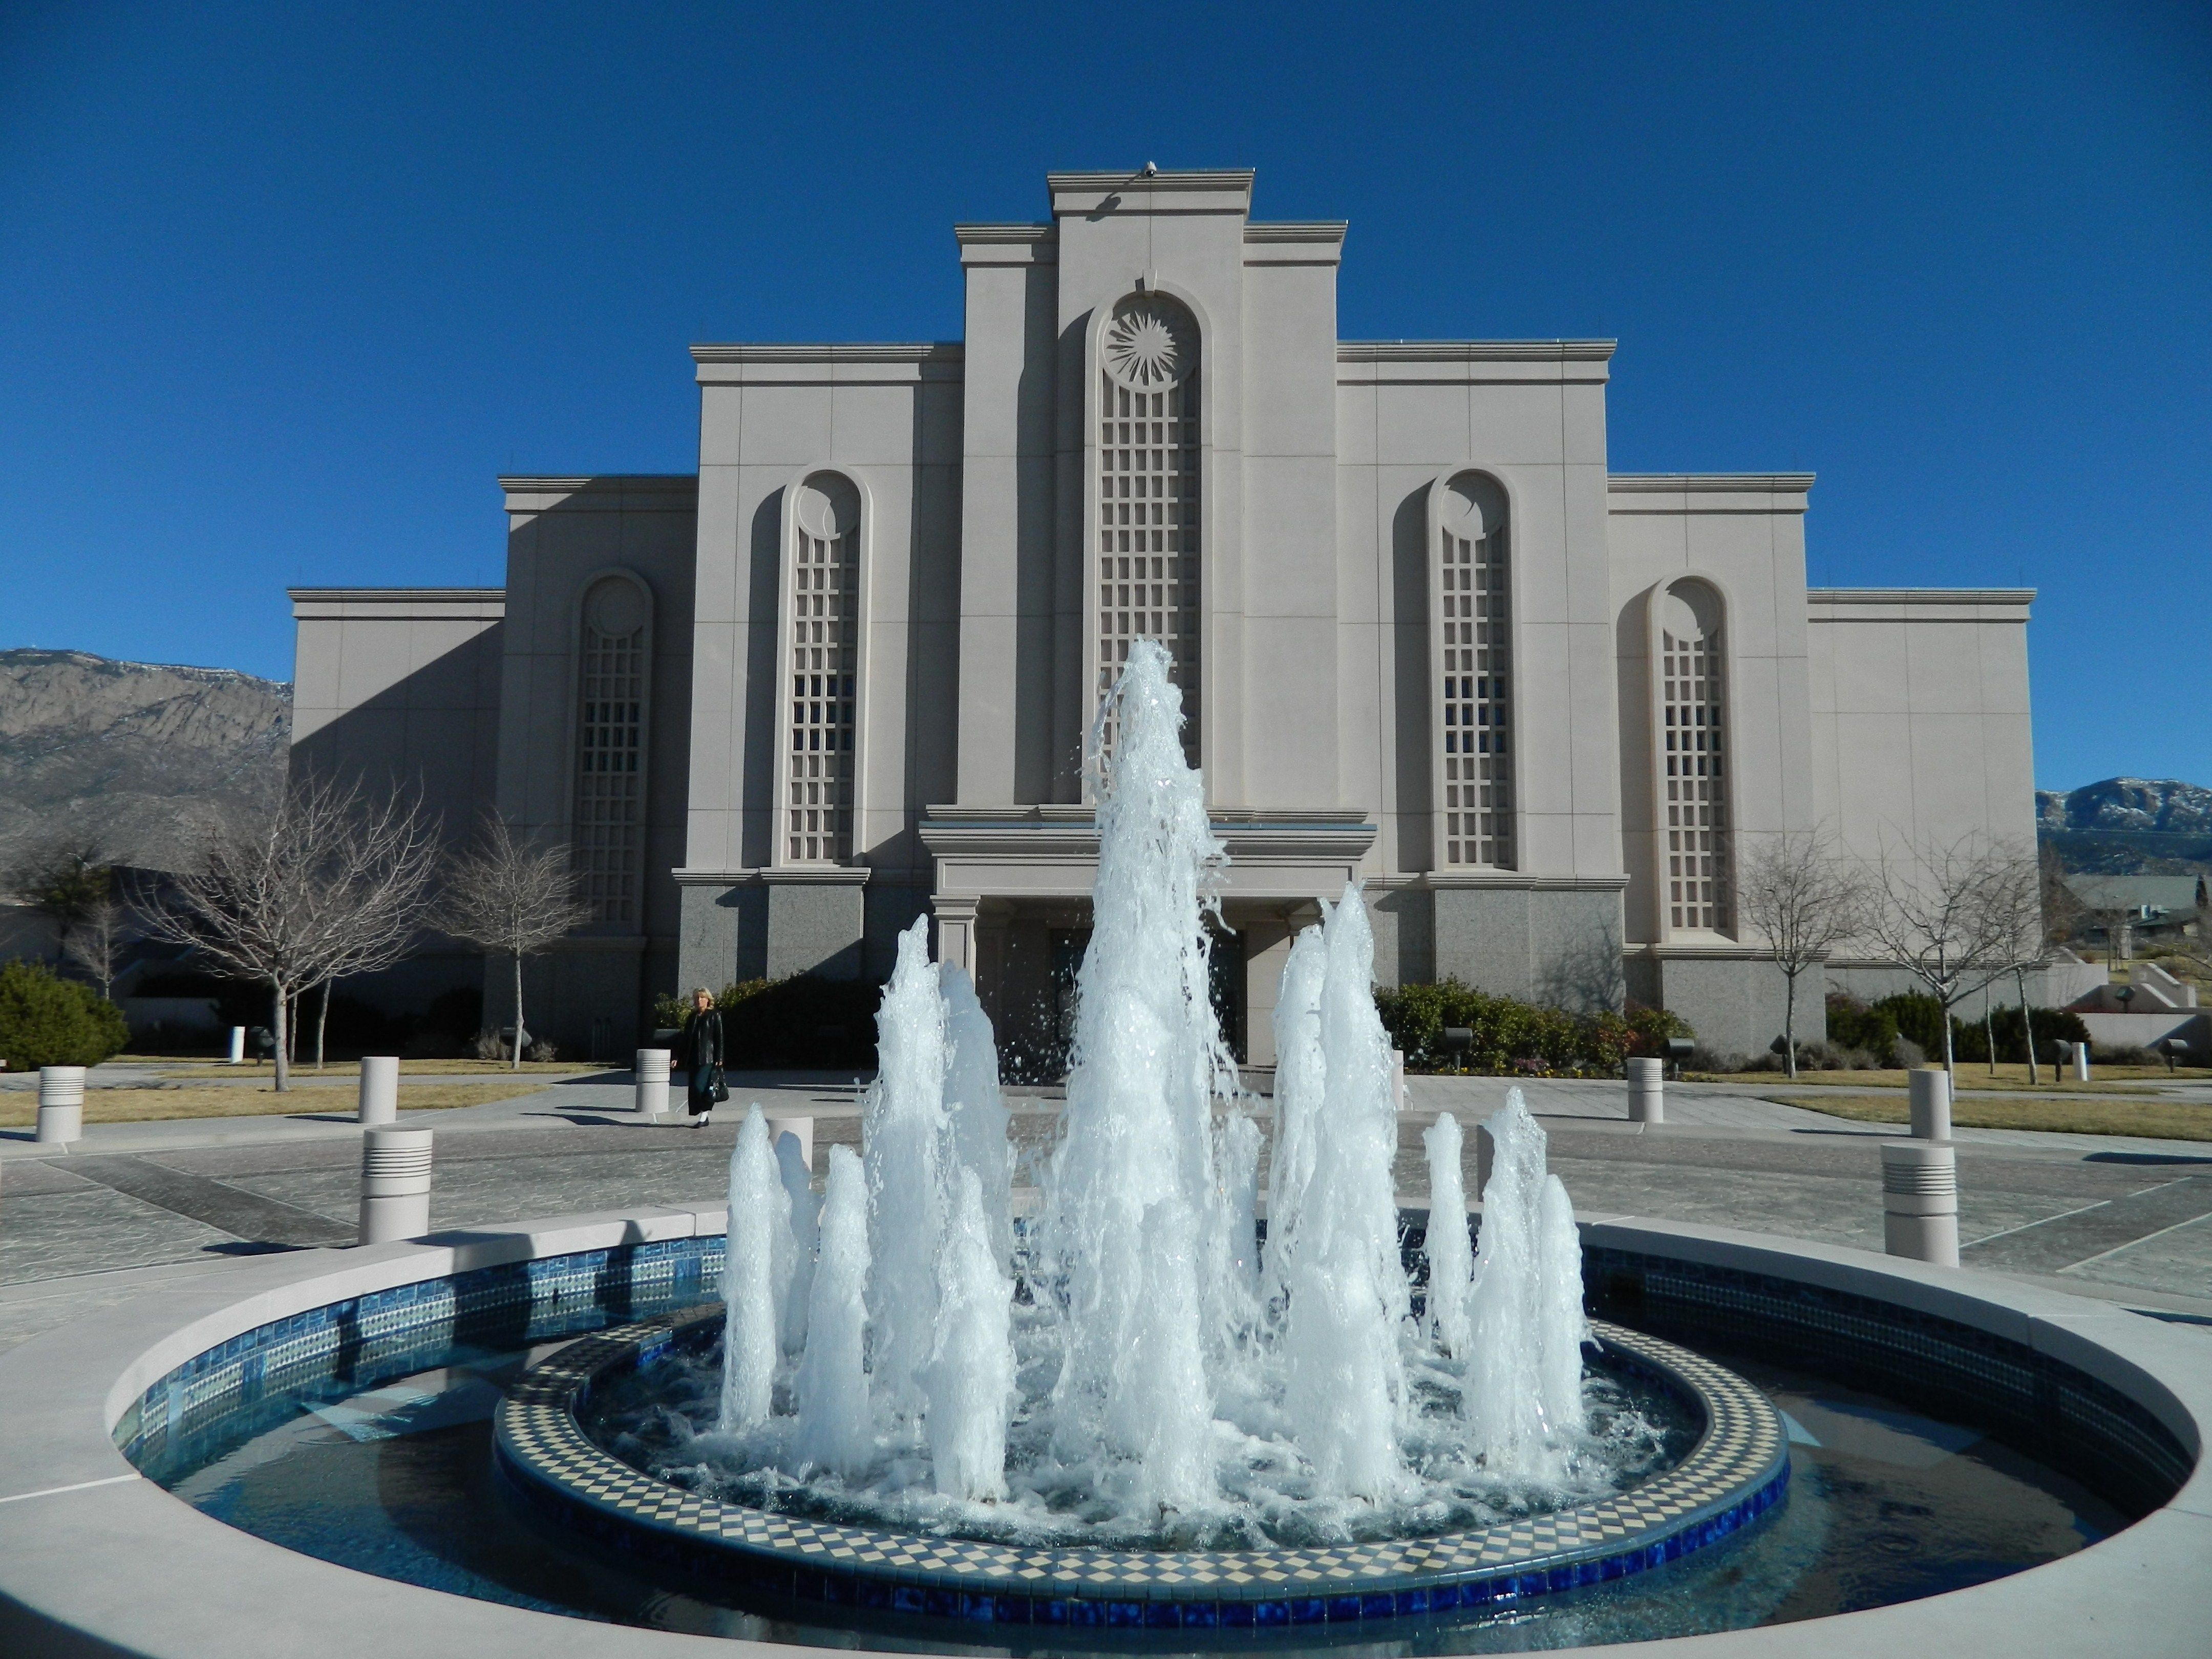 In front of the Albuquerque New Mexico Temple is a large fountain.